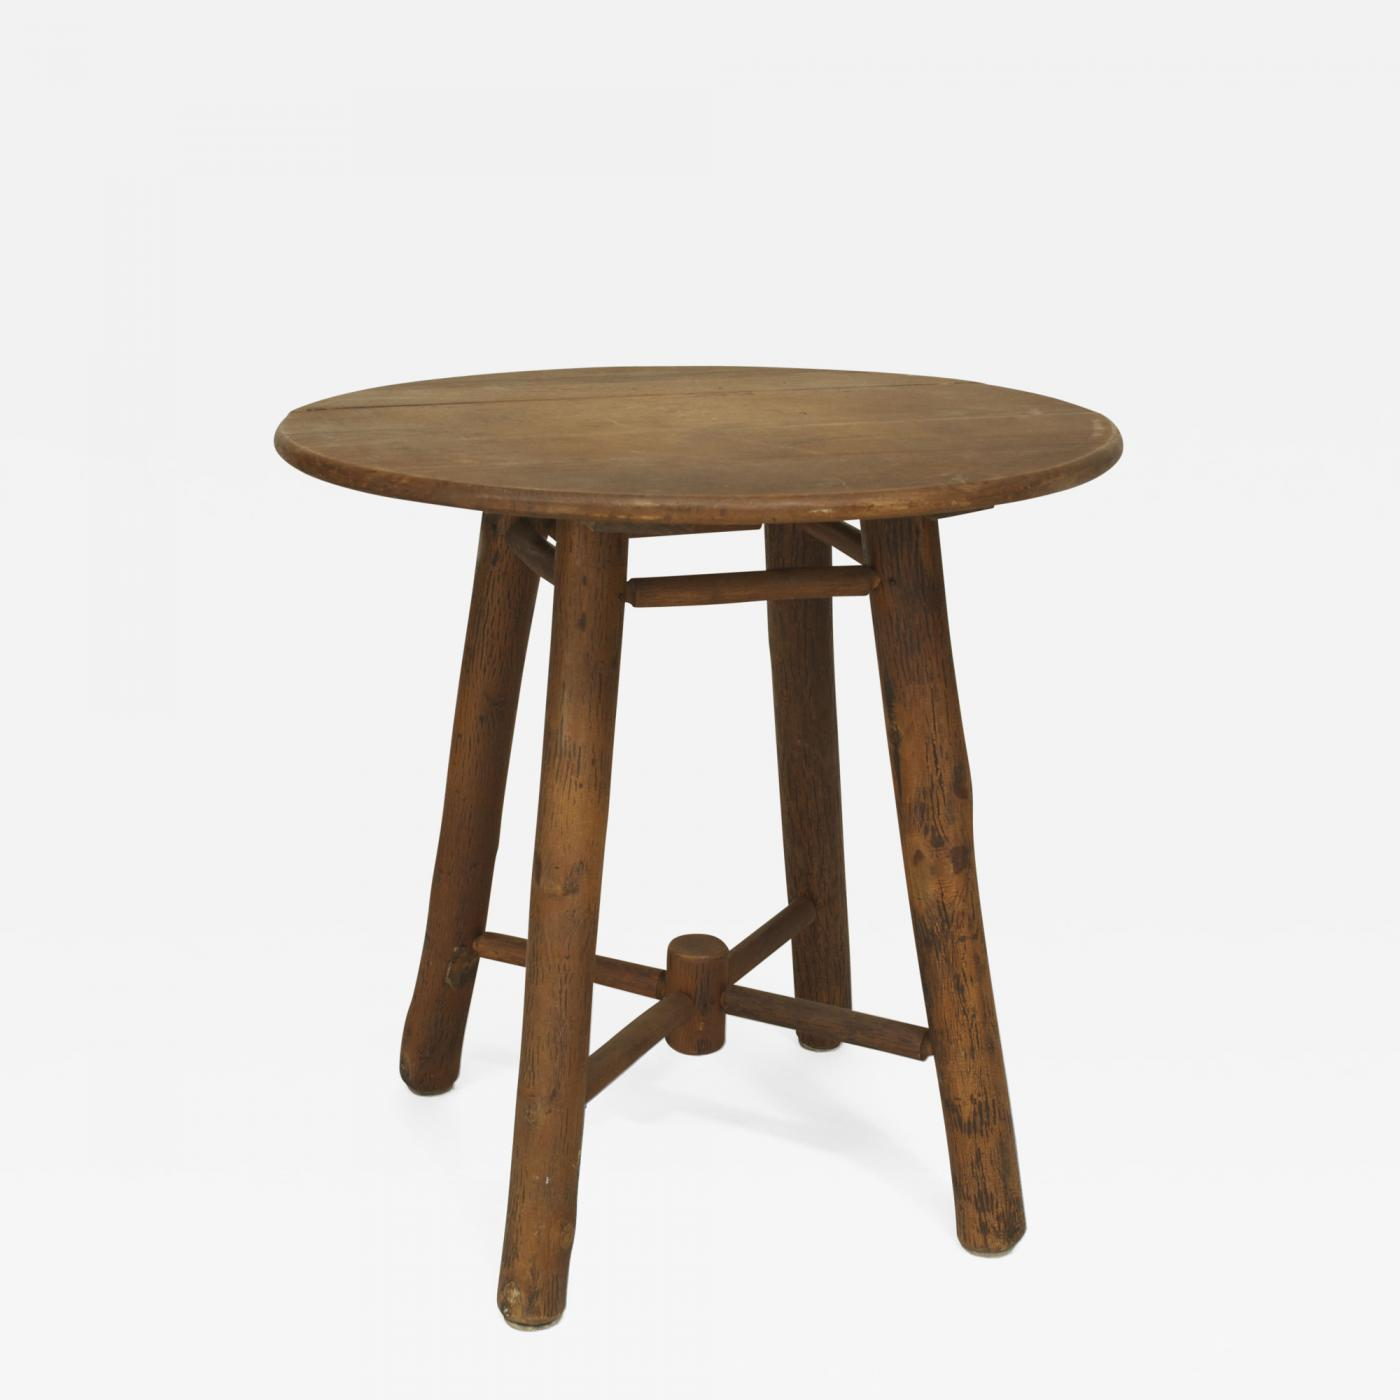 Listings / Furniture / Tables / Side Tables · Old Hickory Furniture Co  American Rustic ...